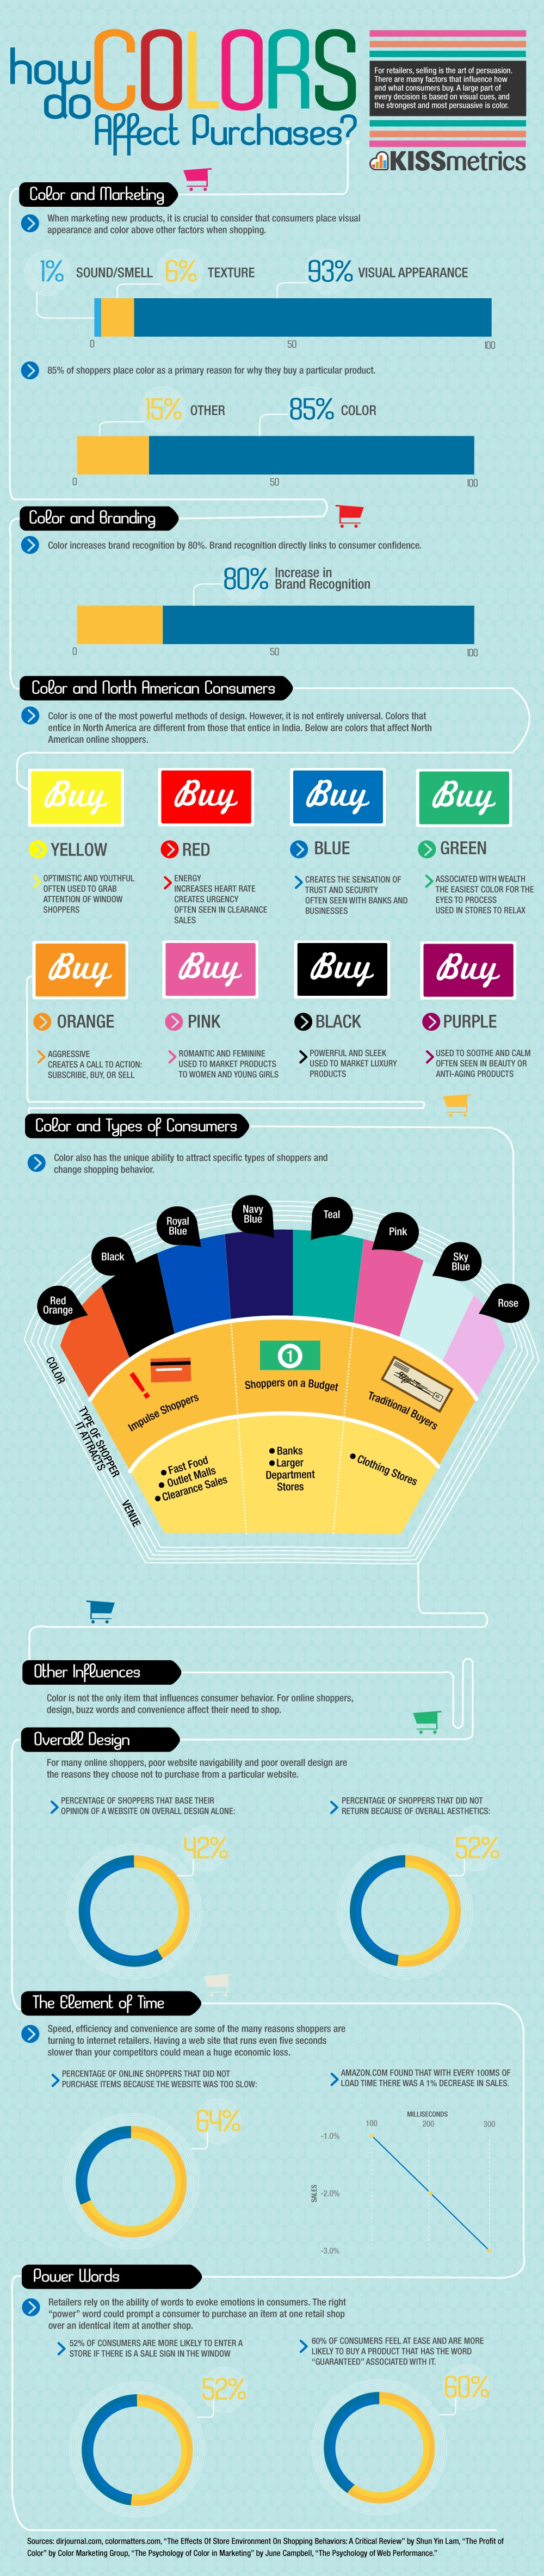 Colors of Marketing